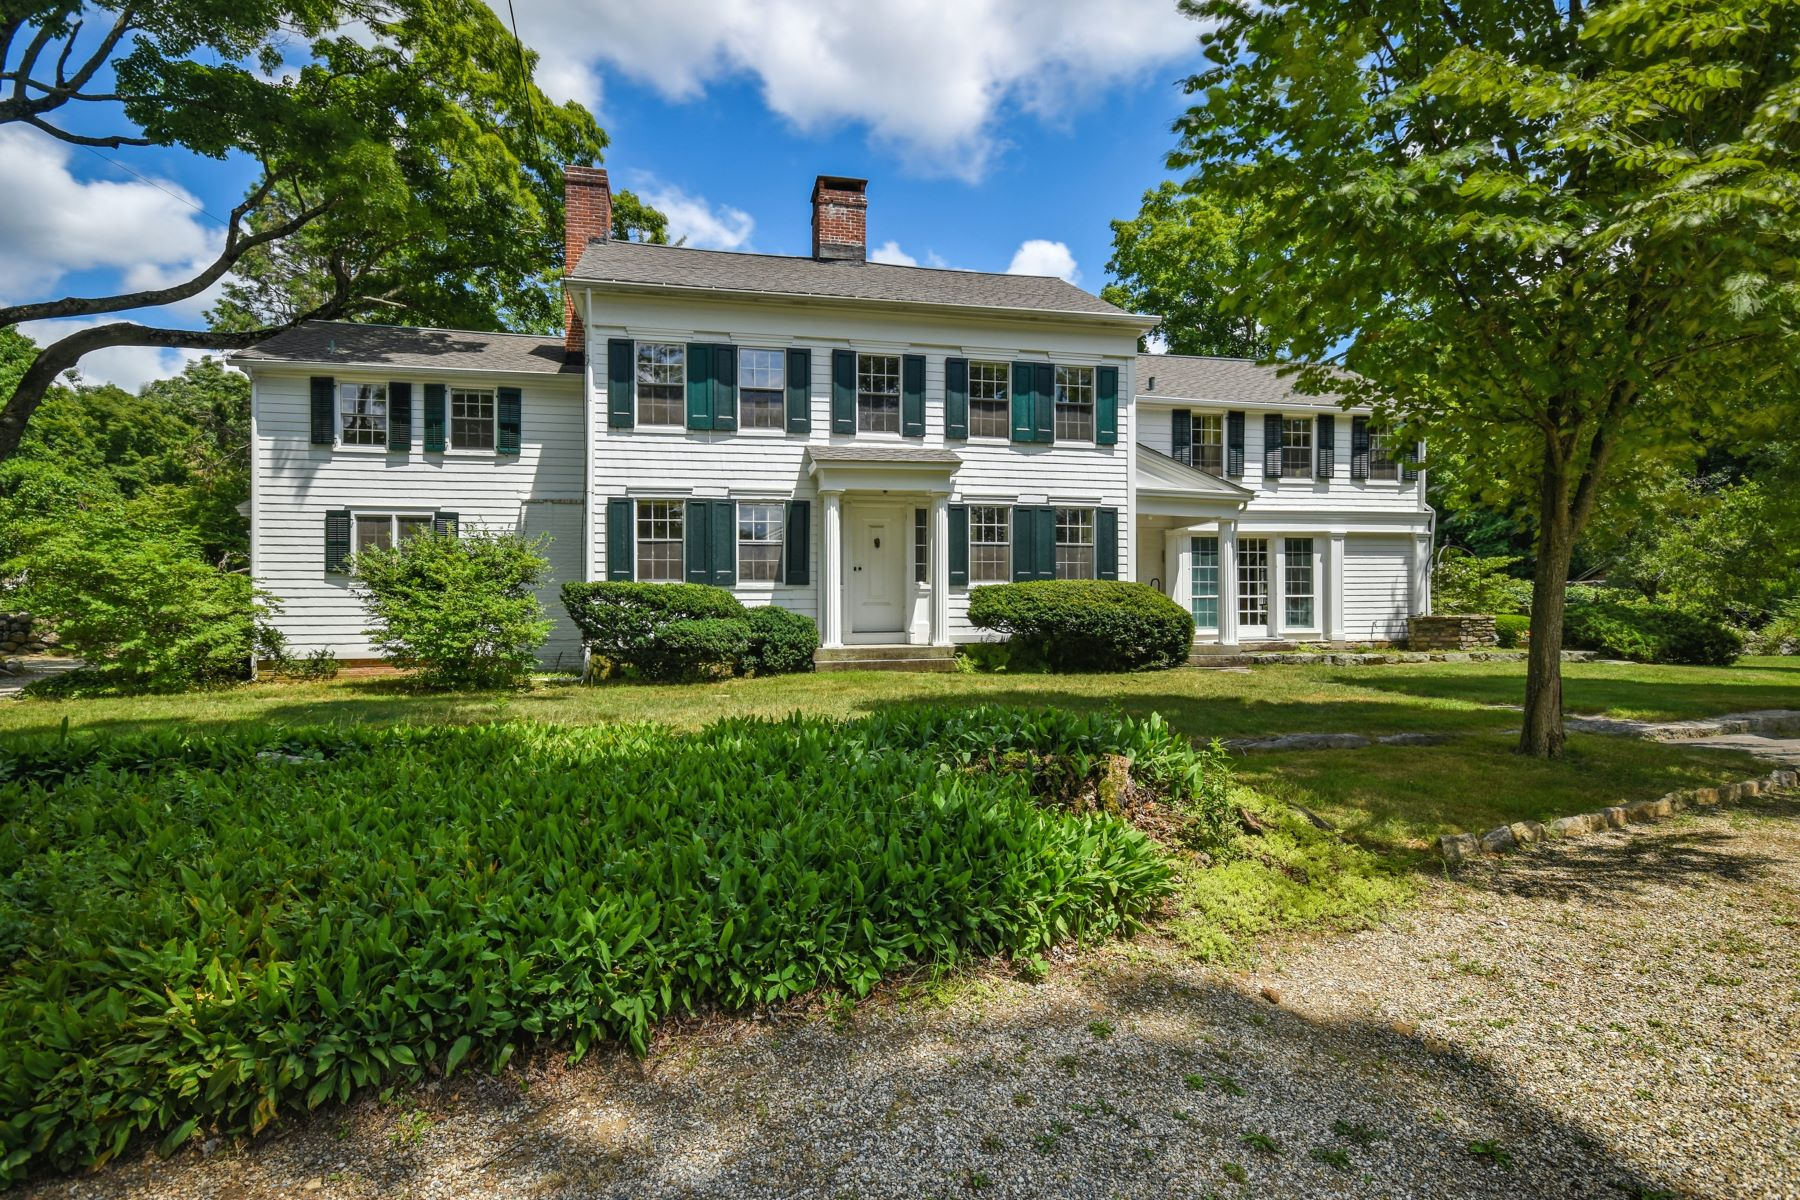 Single Family Homes للـ Sale في Classic CT Antique Home Set on 15 Acres 11 Wampum Hill Road, Weston, Connecticut 06883 United States